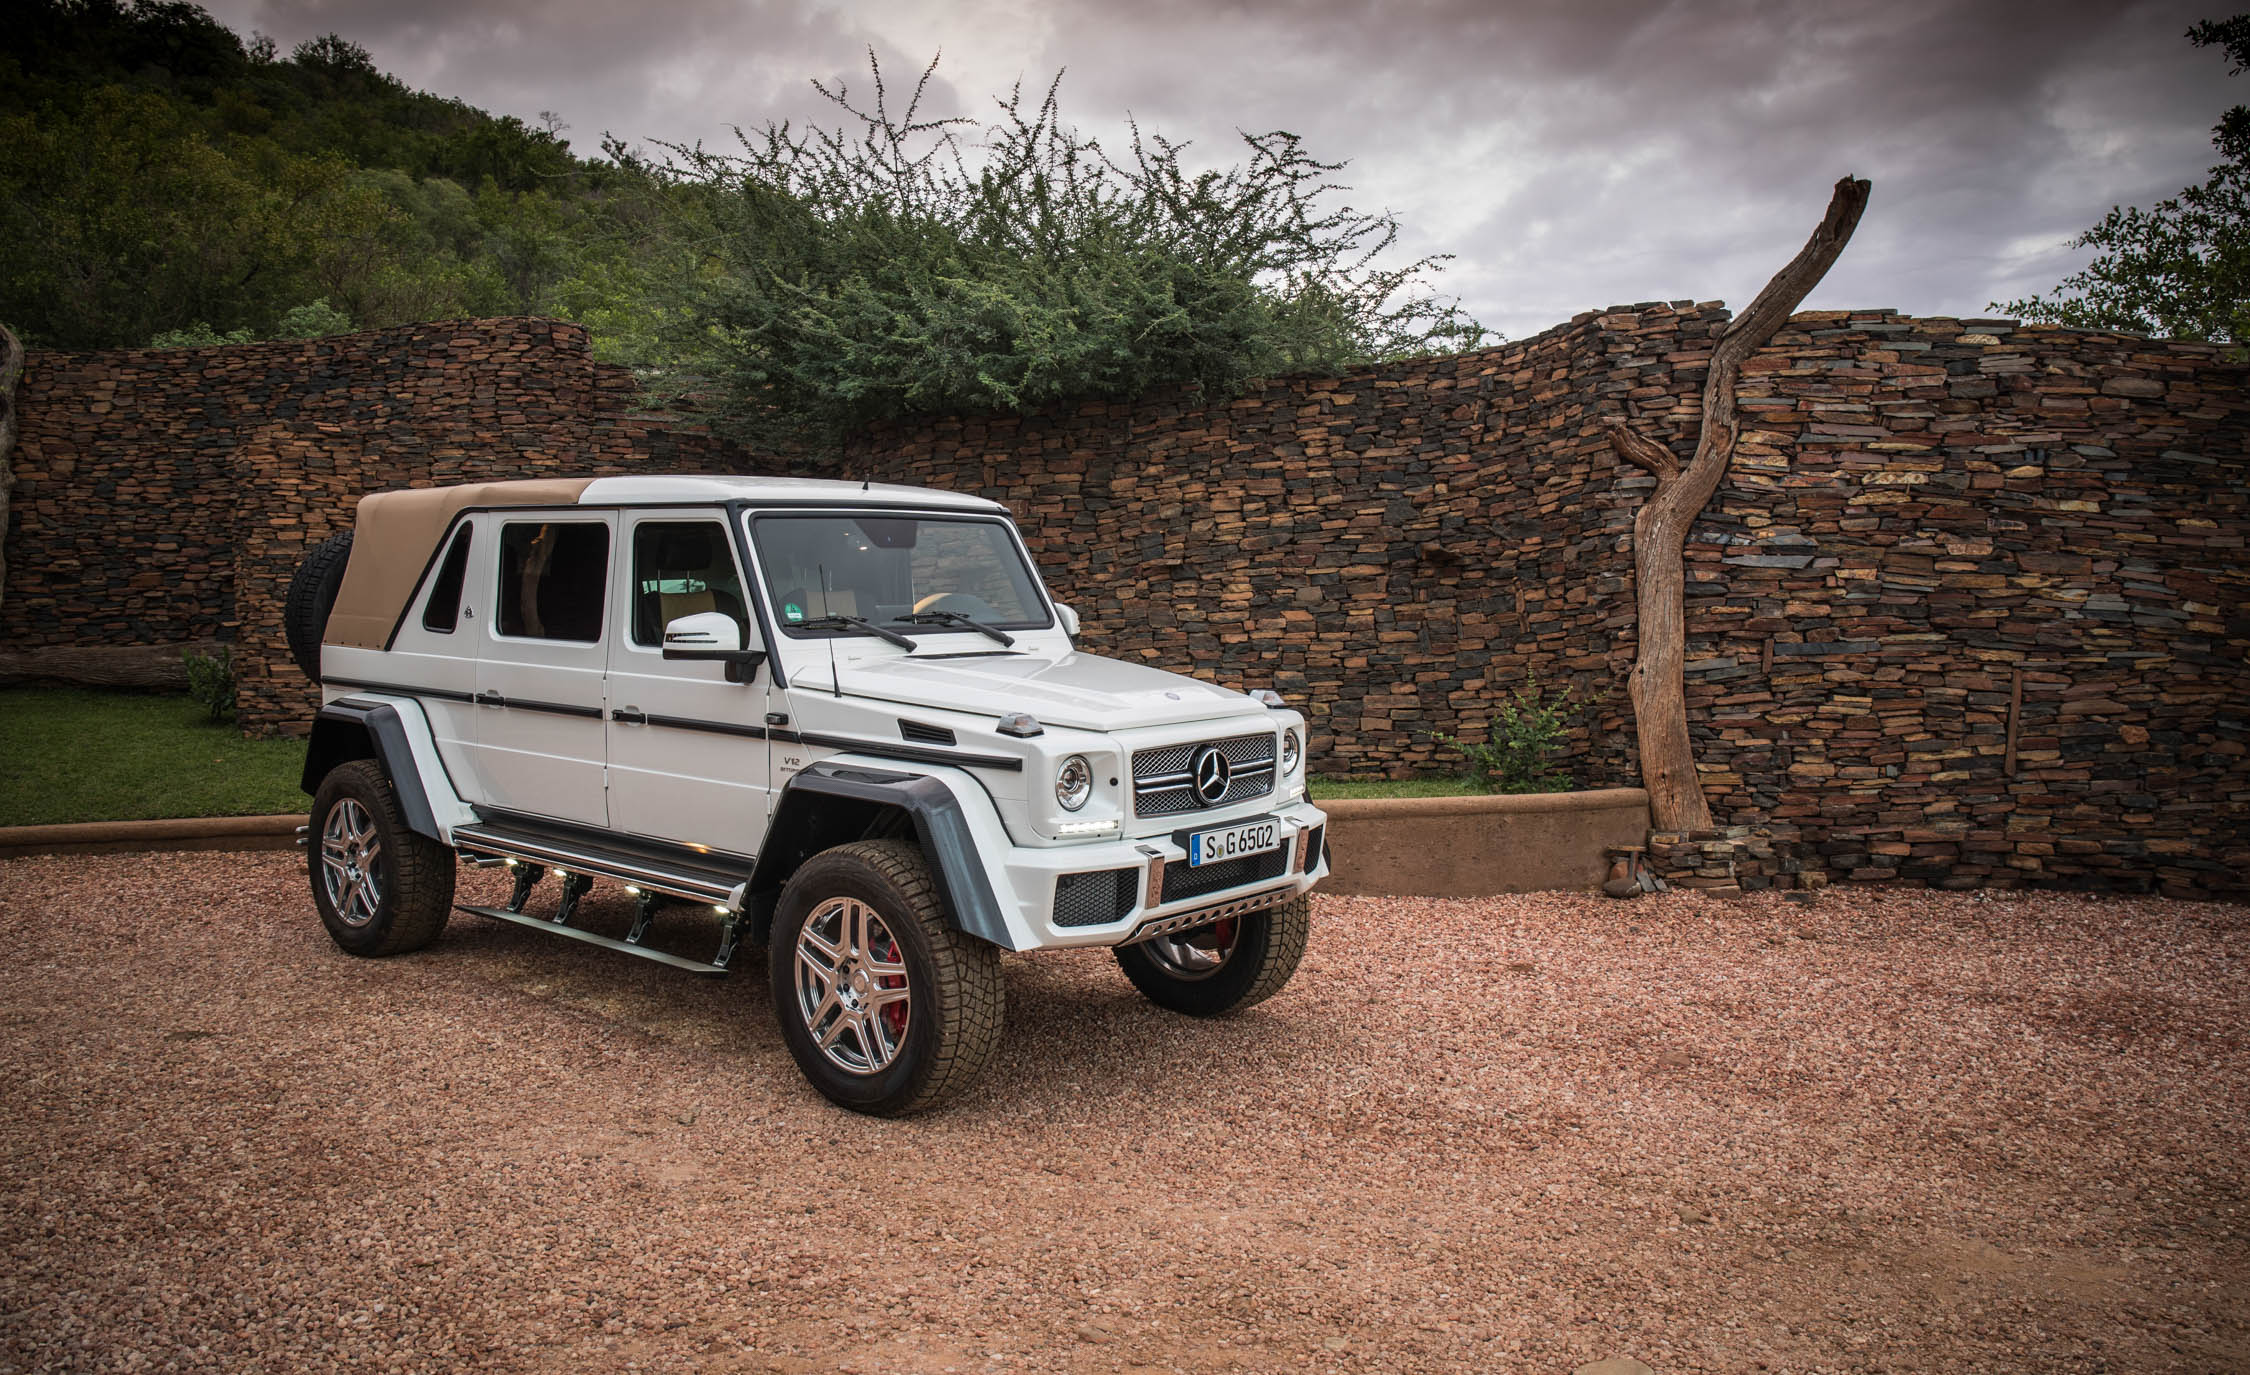 2018 Mercedes Maybach G650 Landaulet White Exterior Front And Side (View 9 of 52)